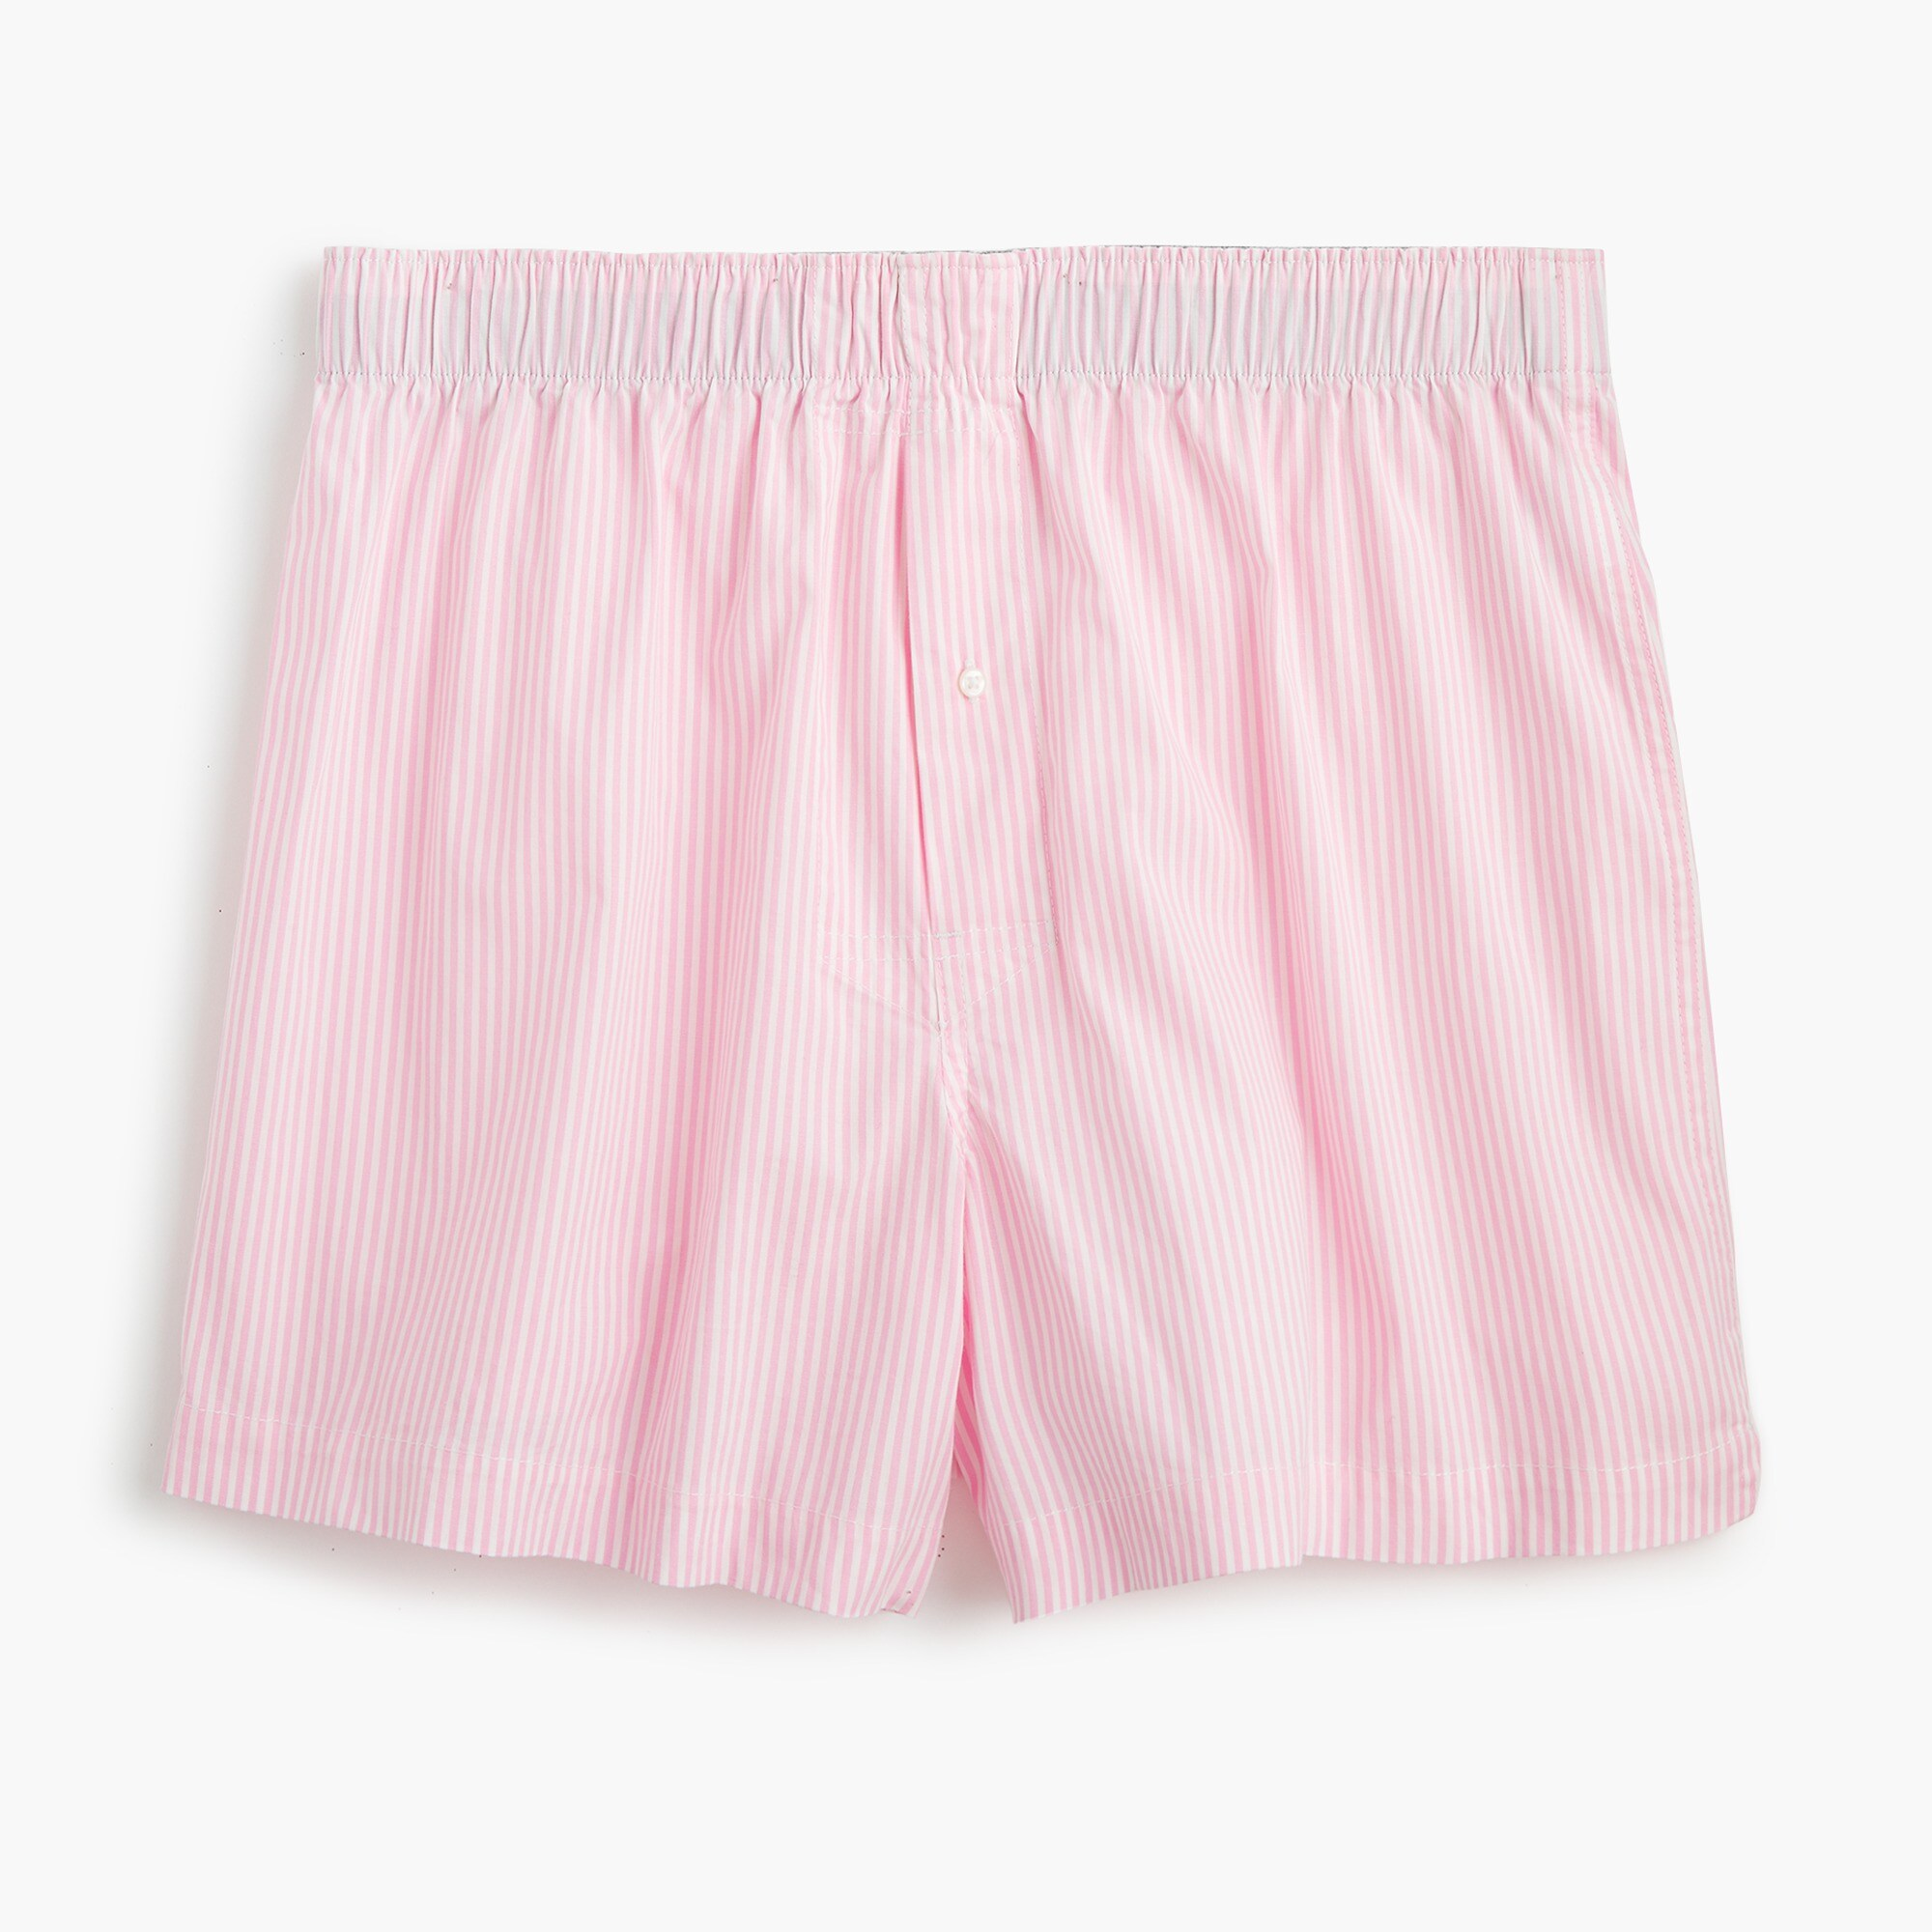 mens Stretch pink striped boxers